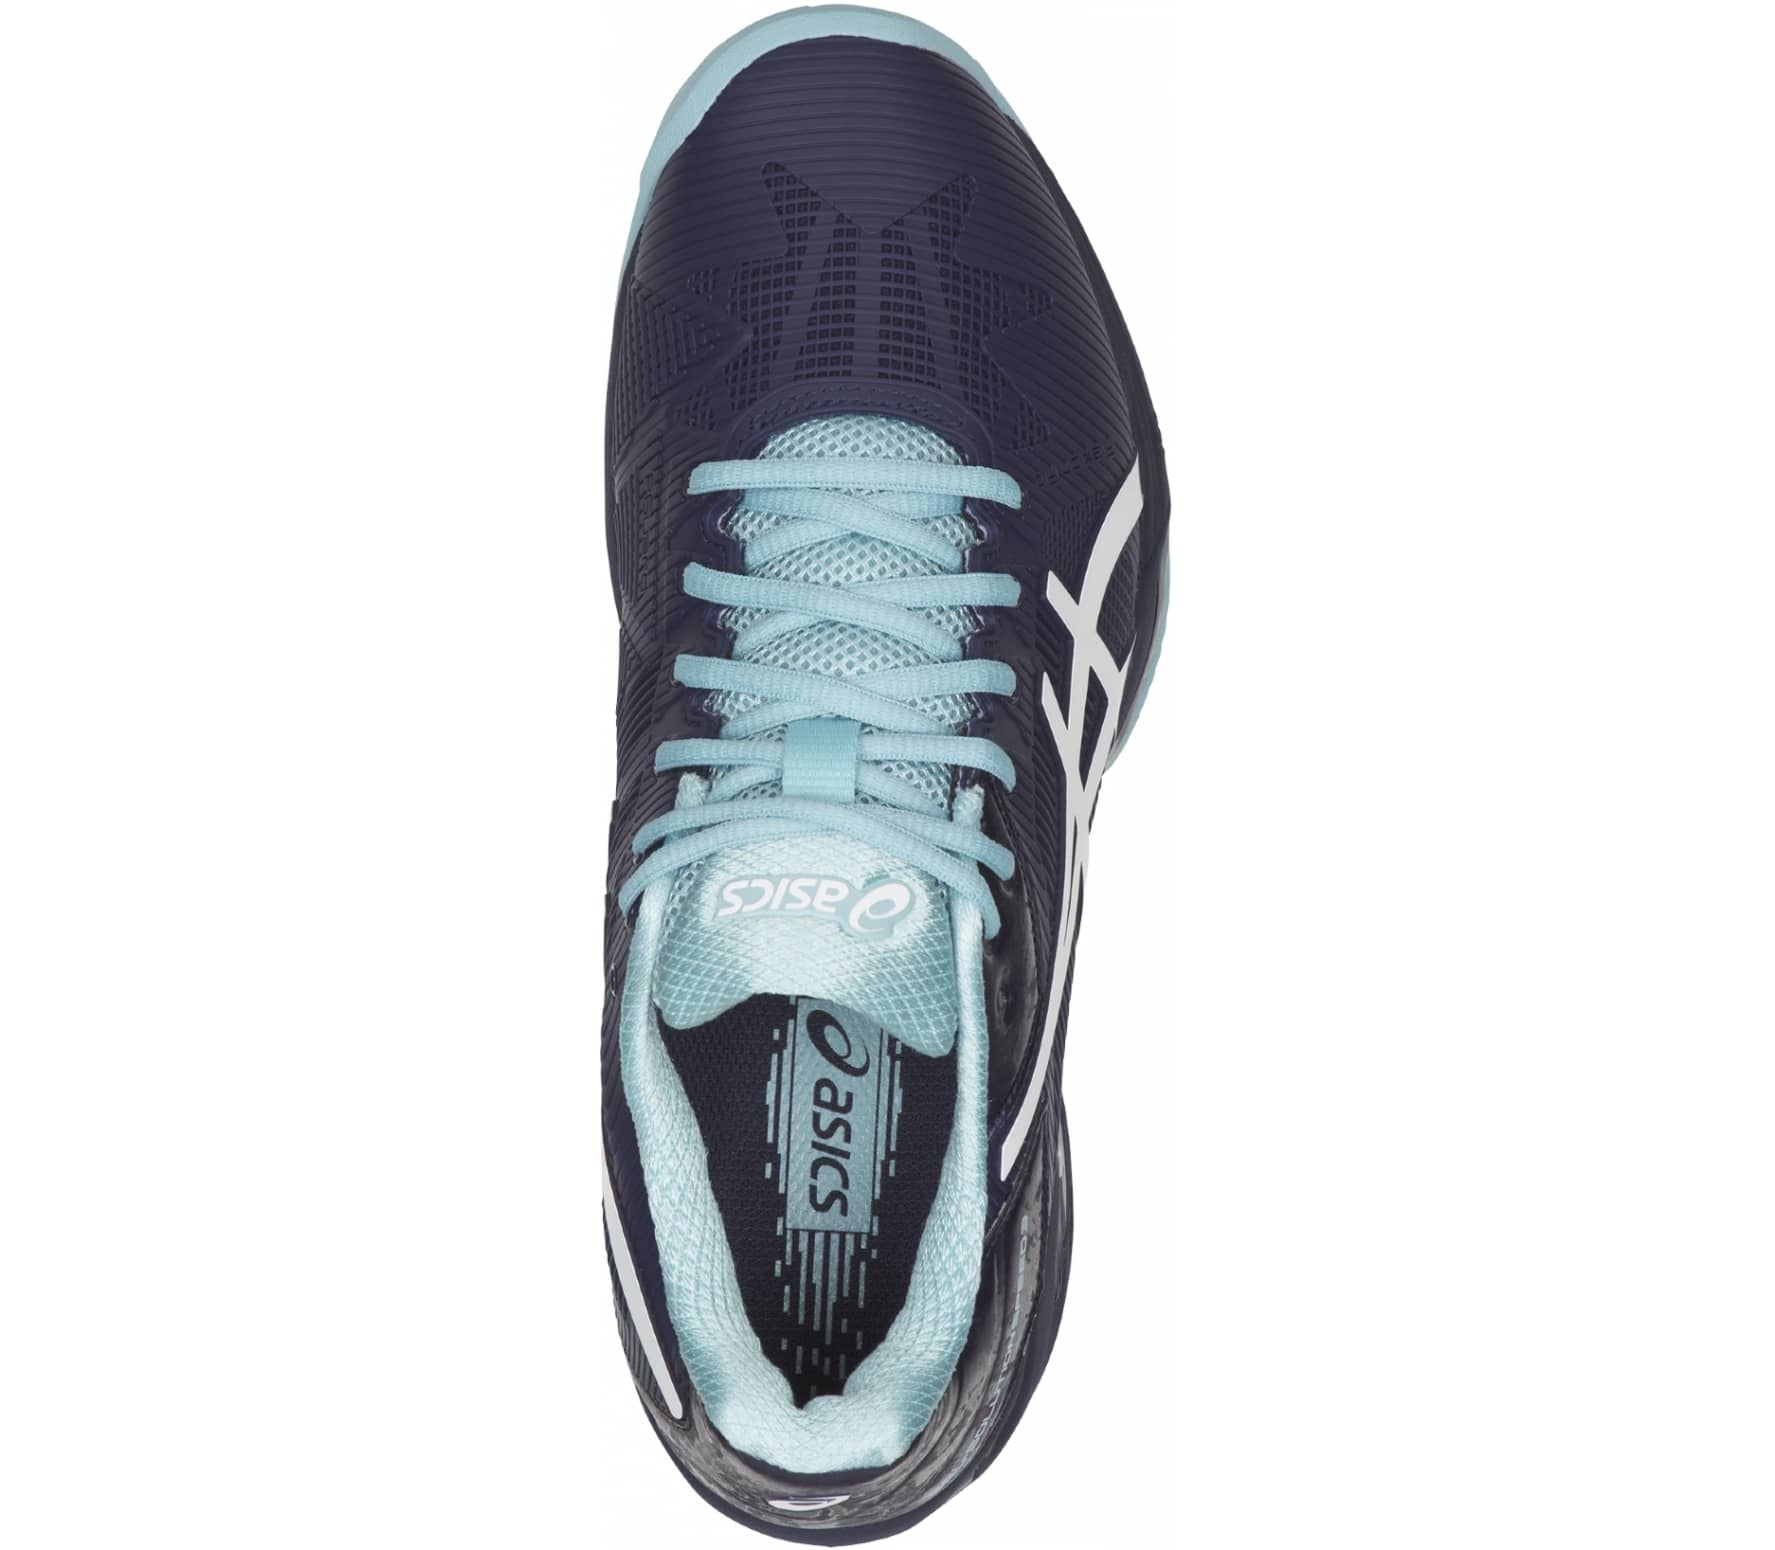 3098539a231aa ASICS - Gel-Solution Speed 3 Clay Mujer Zapato de tenis (azul oscuro ...